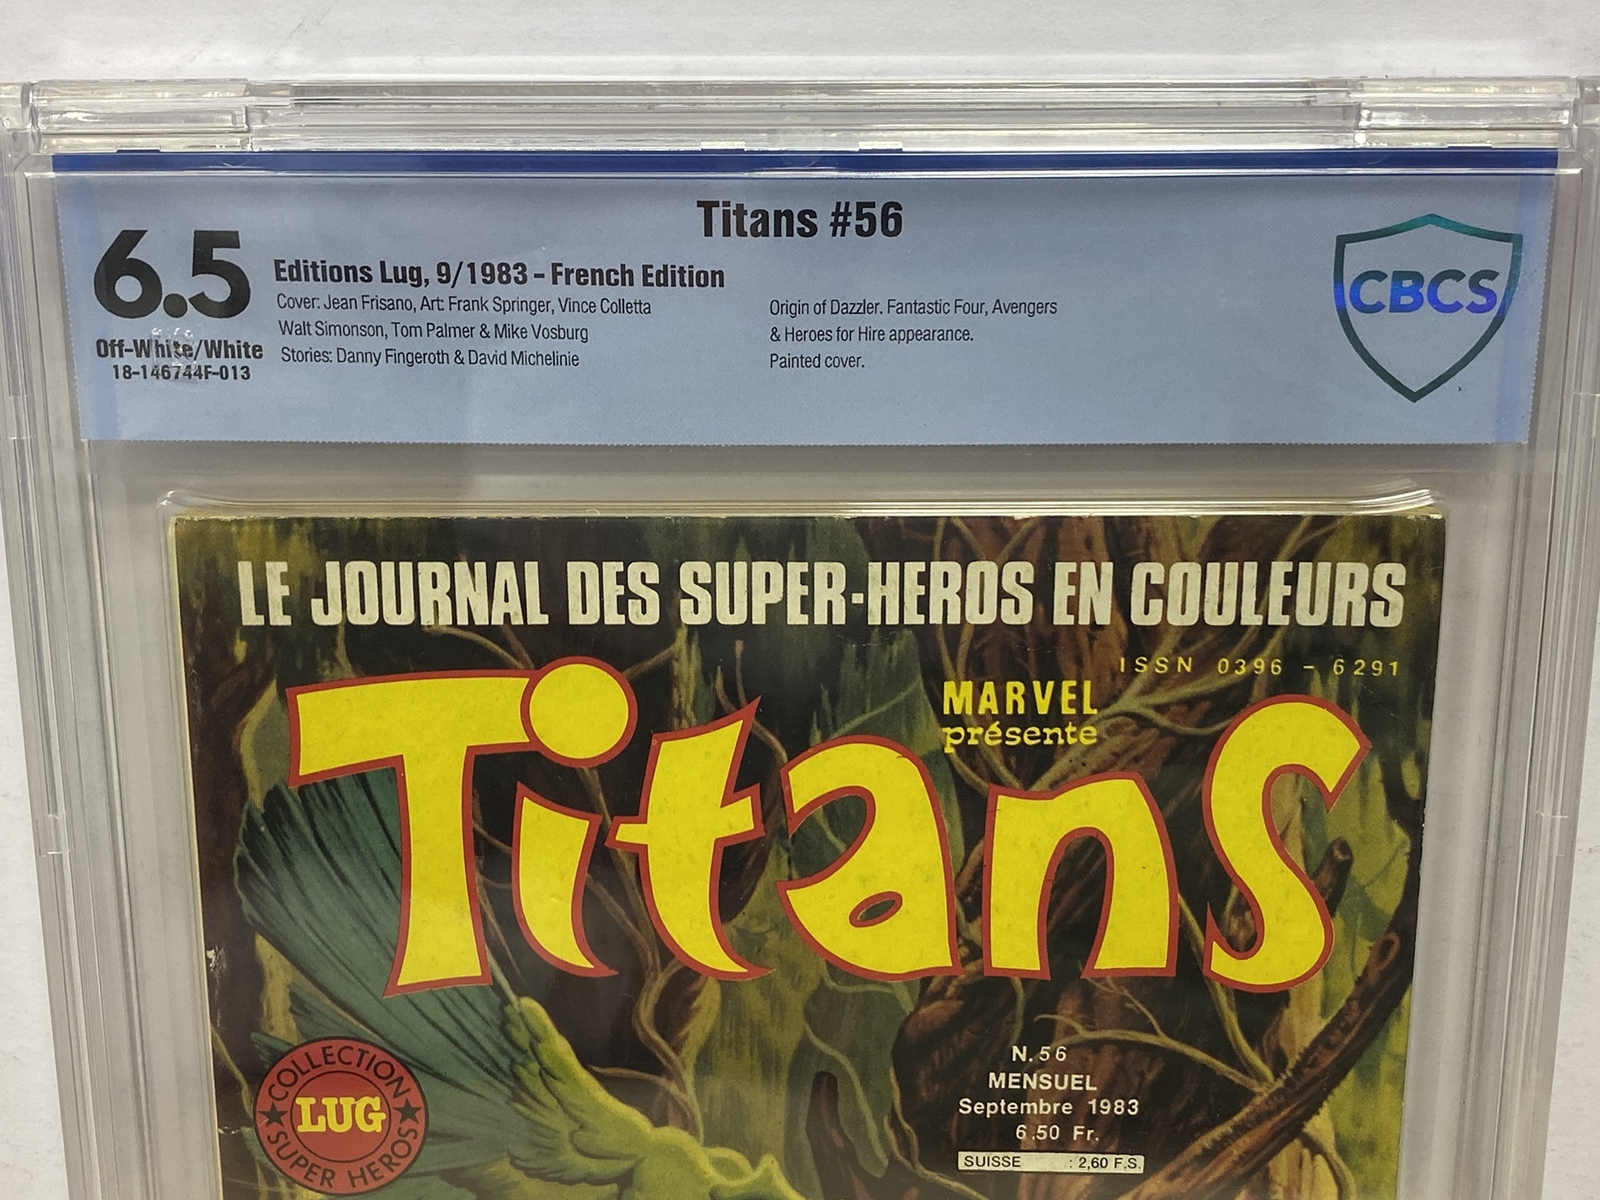 Lot 2008 - TITANS #56 (1983 - MARVEL - French Edition) Graded CBCS 6.5 (French Franc Copy) - Frank Springer,